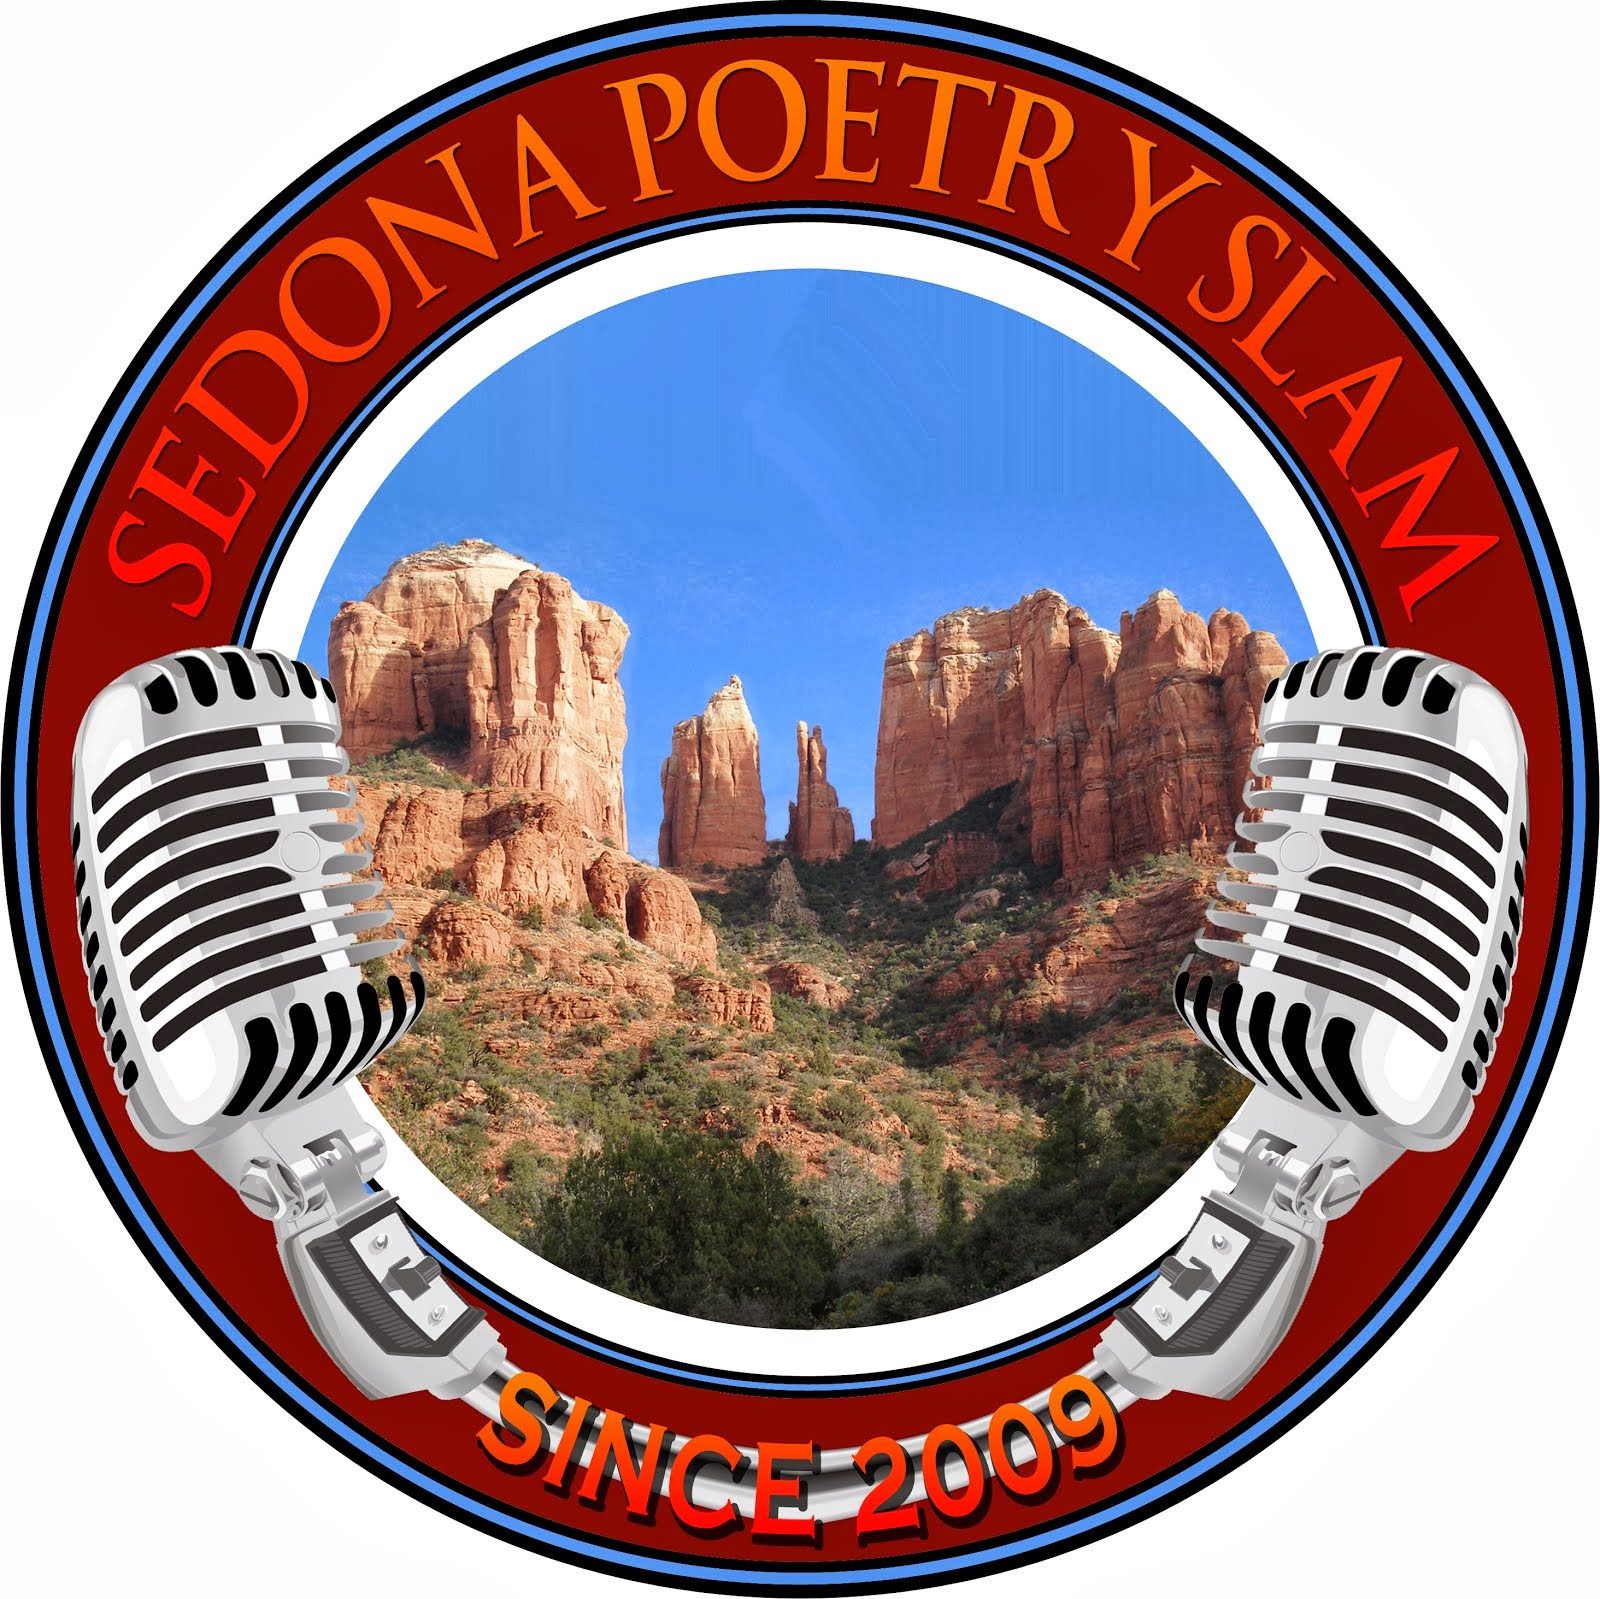 ... of the poets competing at the Sedona Poetry Slam on Saturday, Nov. 1